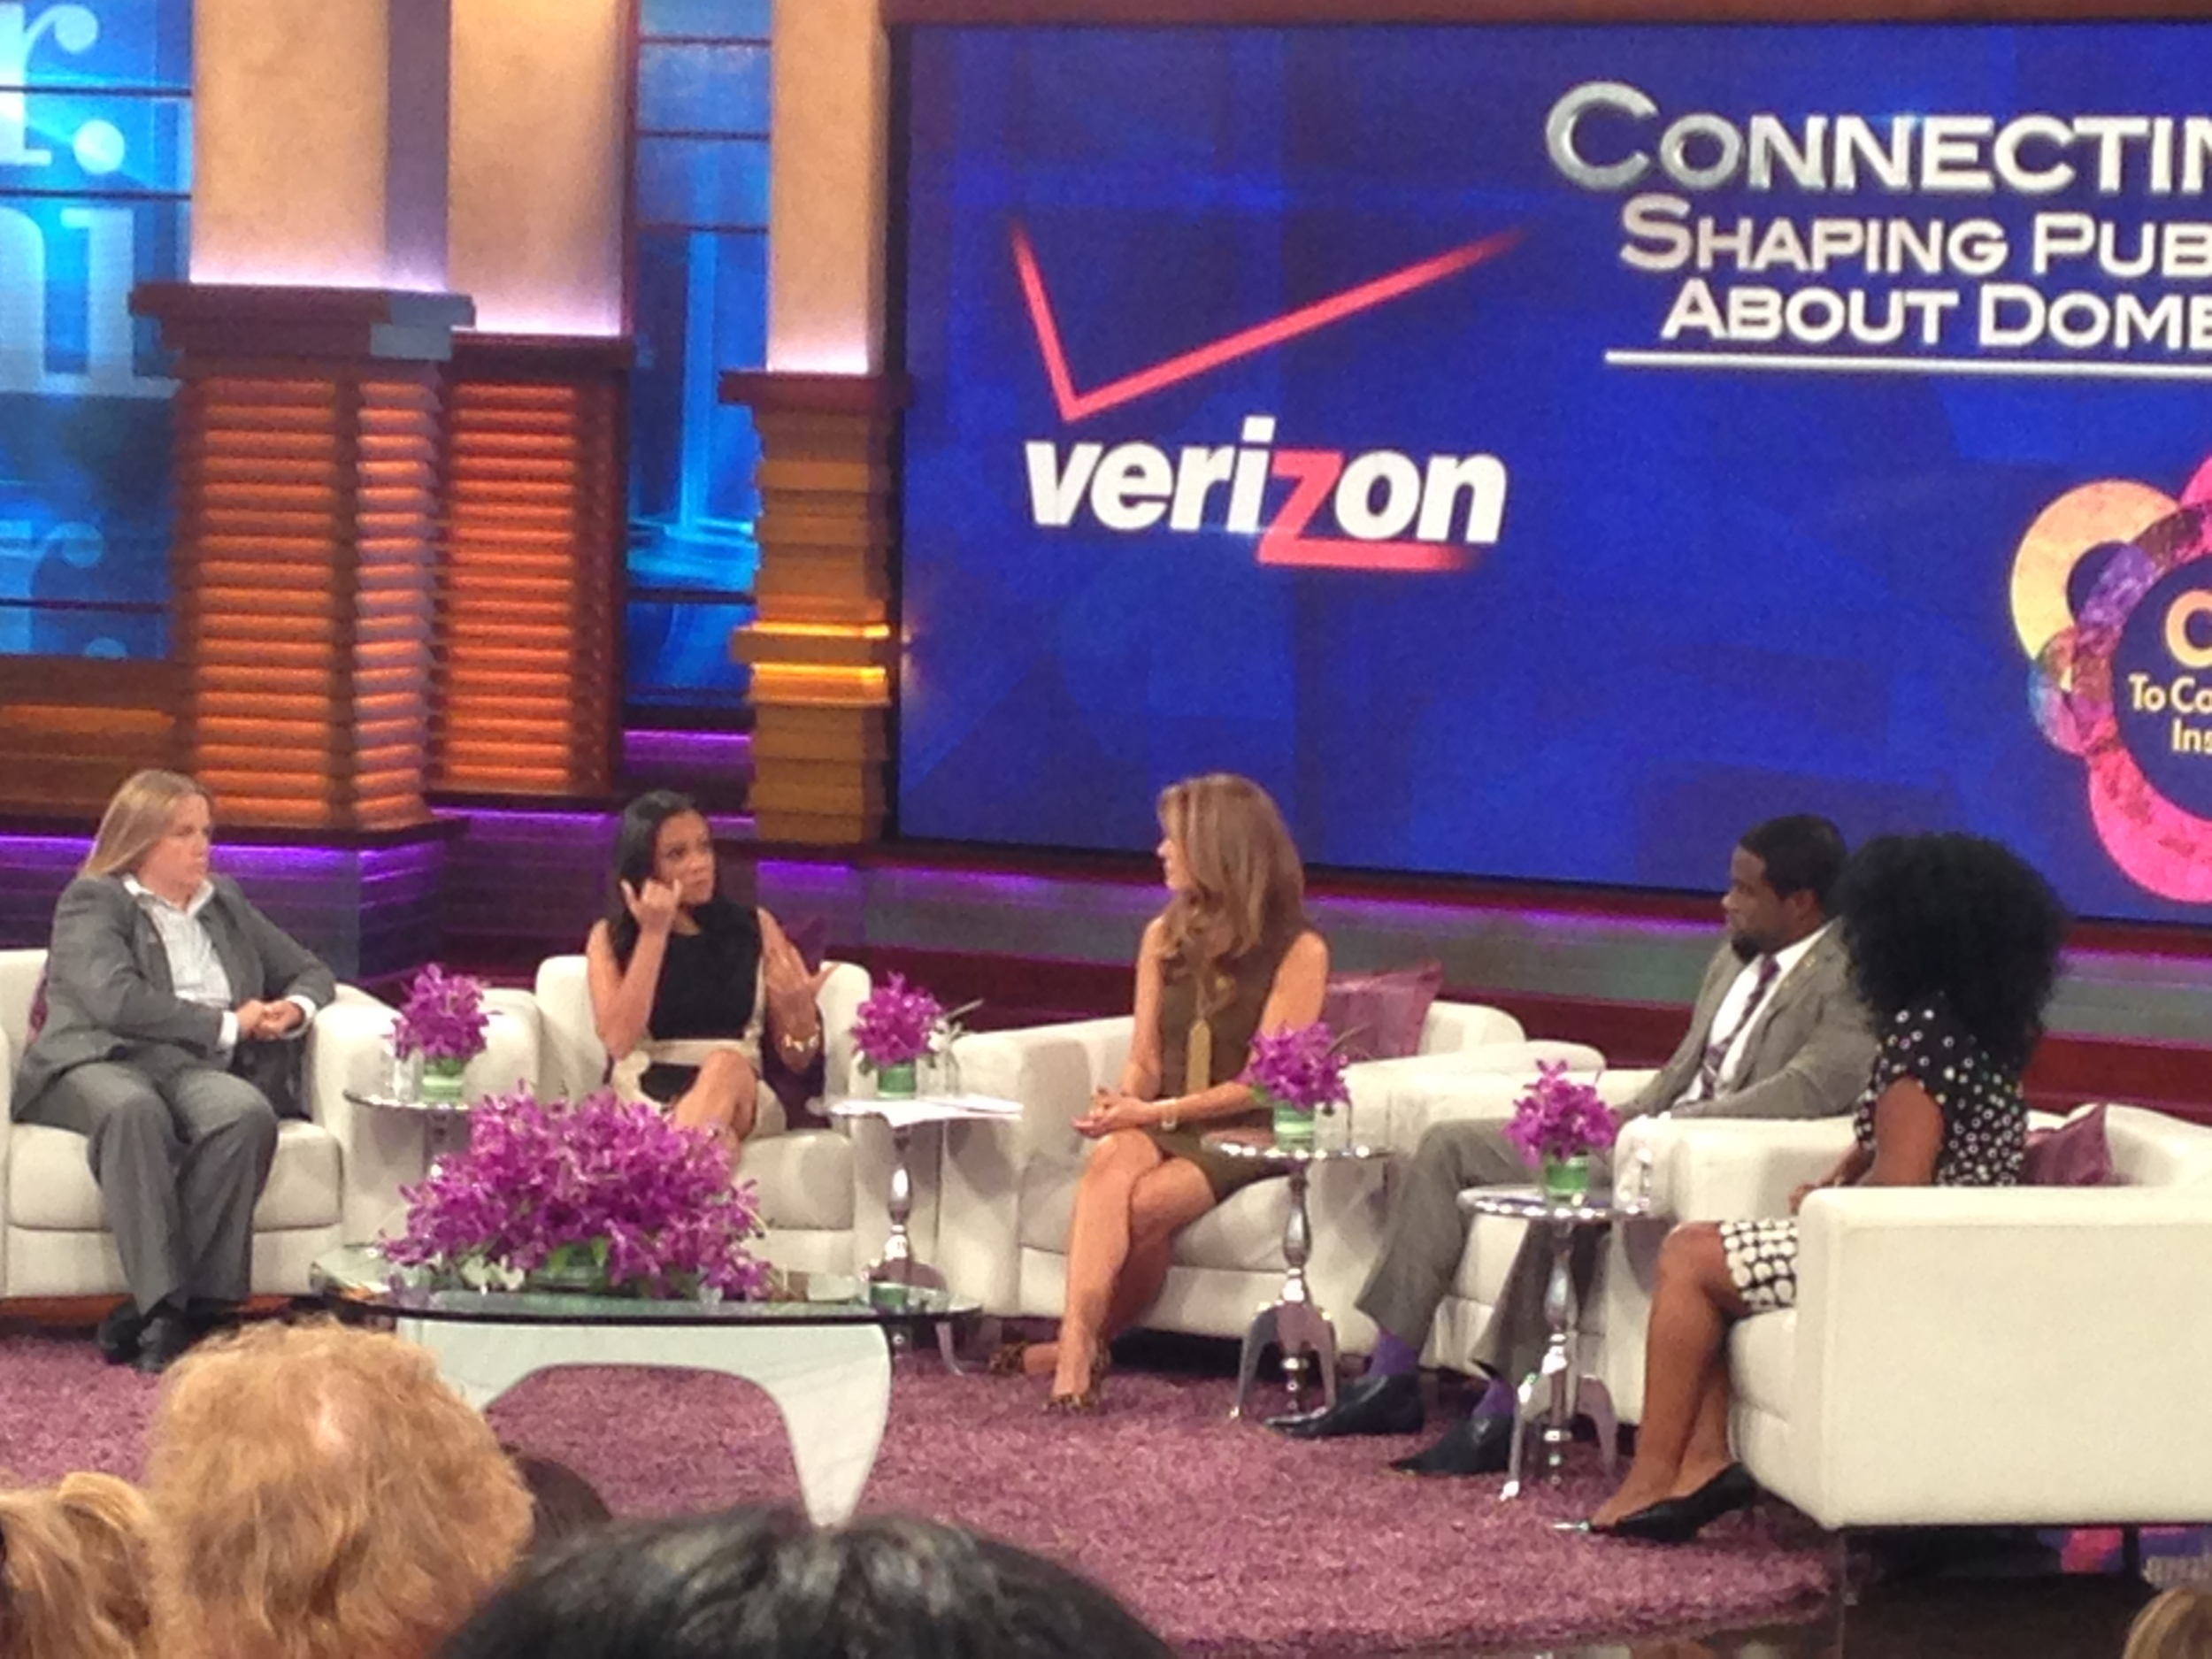 (Left to right) Judge Katherine Tennyson, MSNBC's Goldie Taylor, CNN/HLN's Christi Paul, former NFL player Chris Johnson and Beverly Gooden, creator of the #WhyIStayed Movement, discuss public perception about domestic violence.